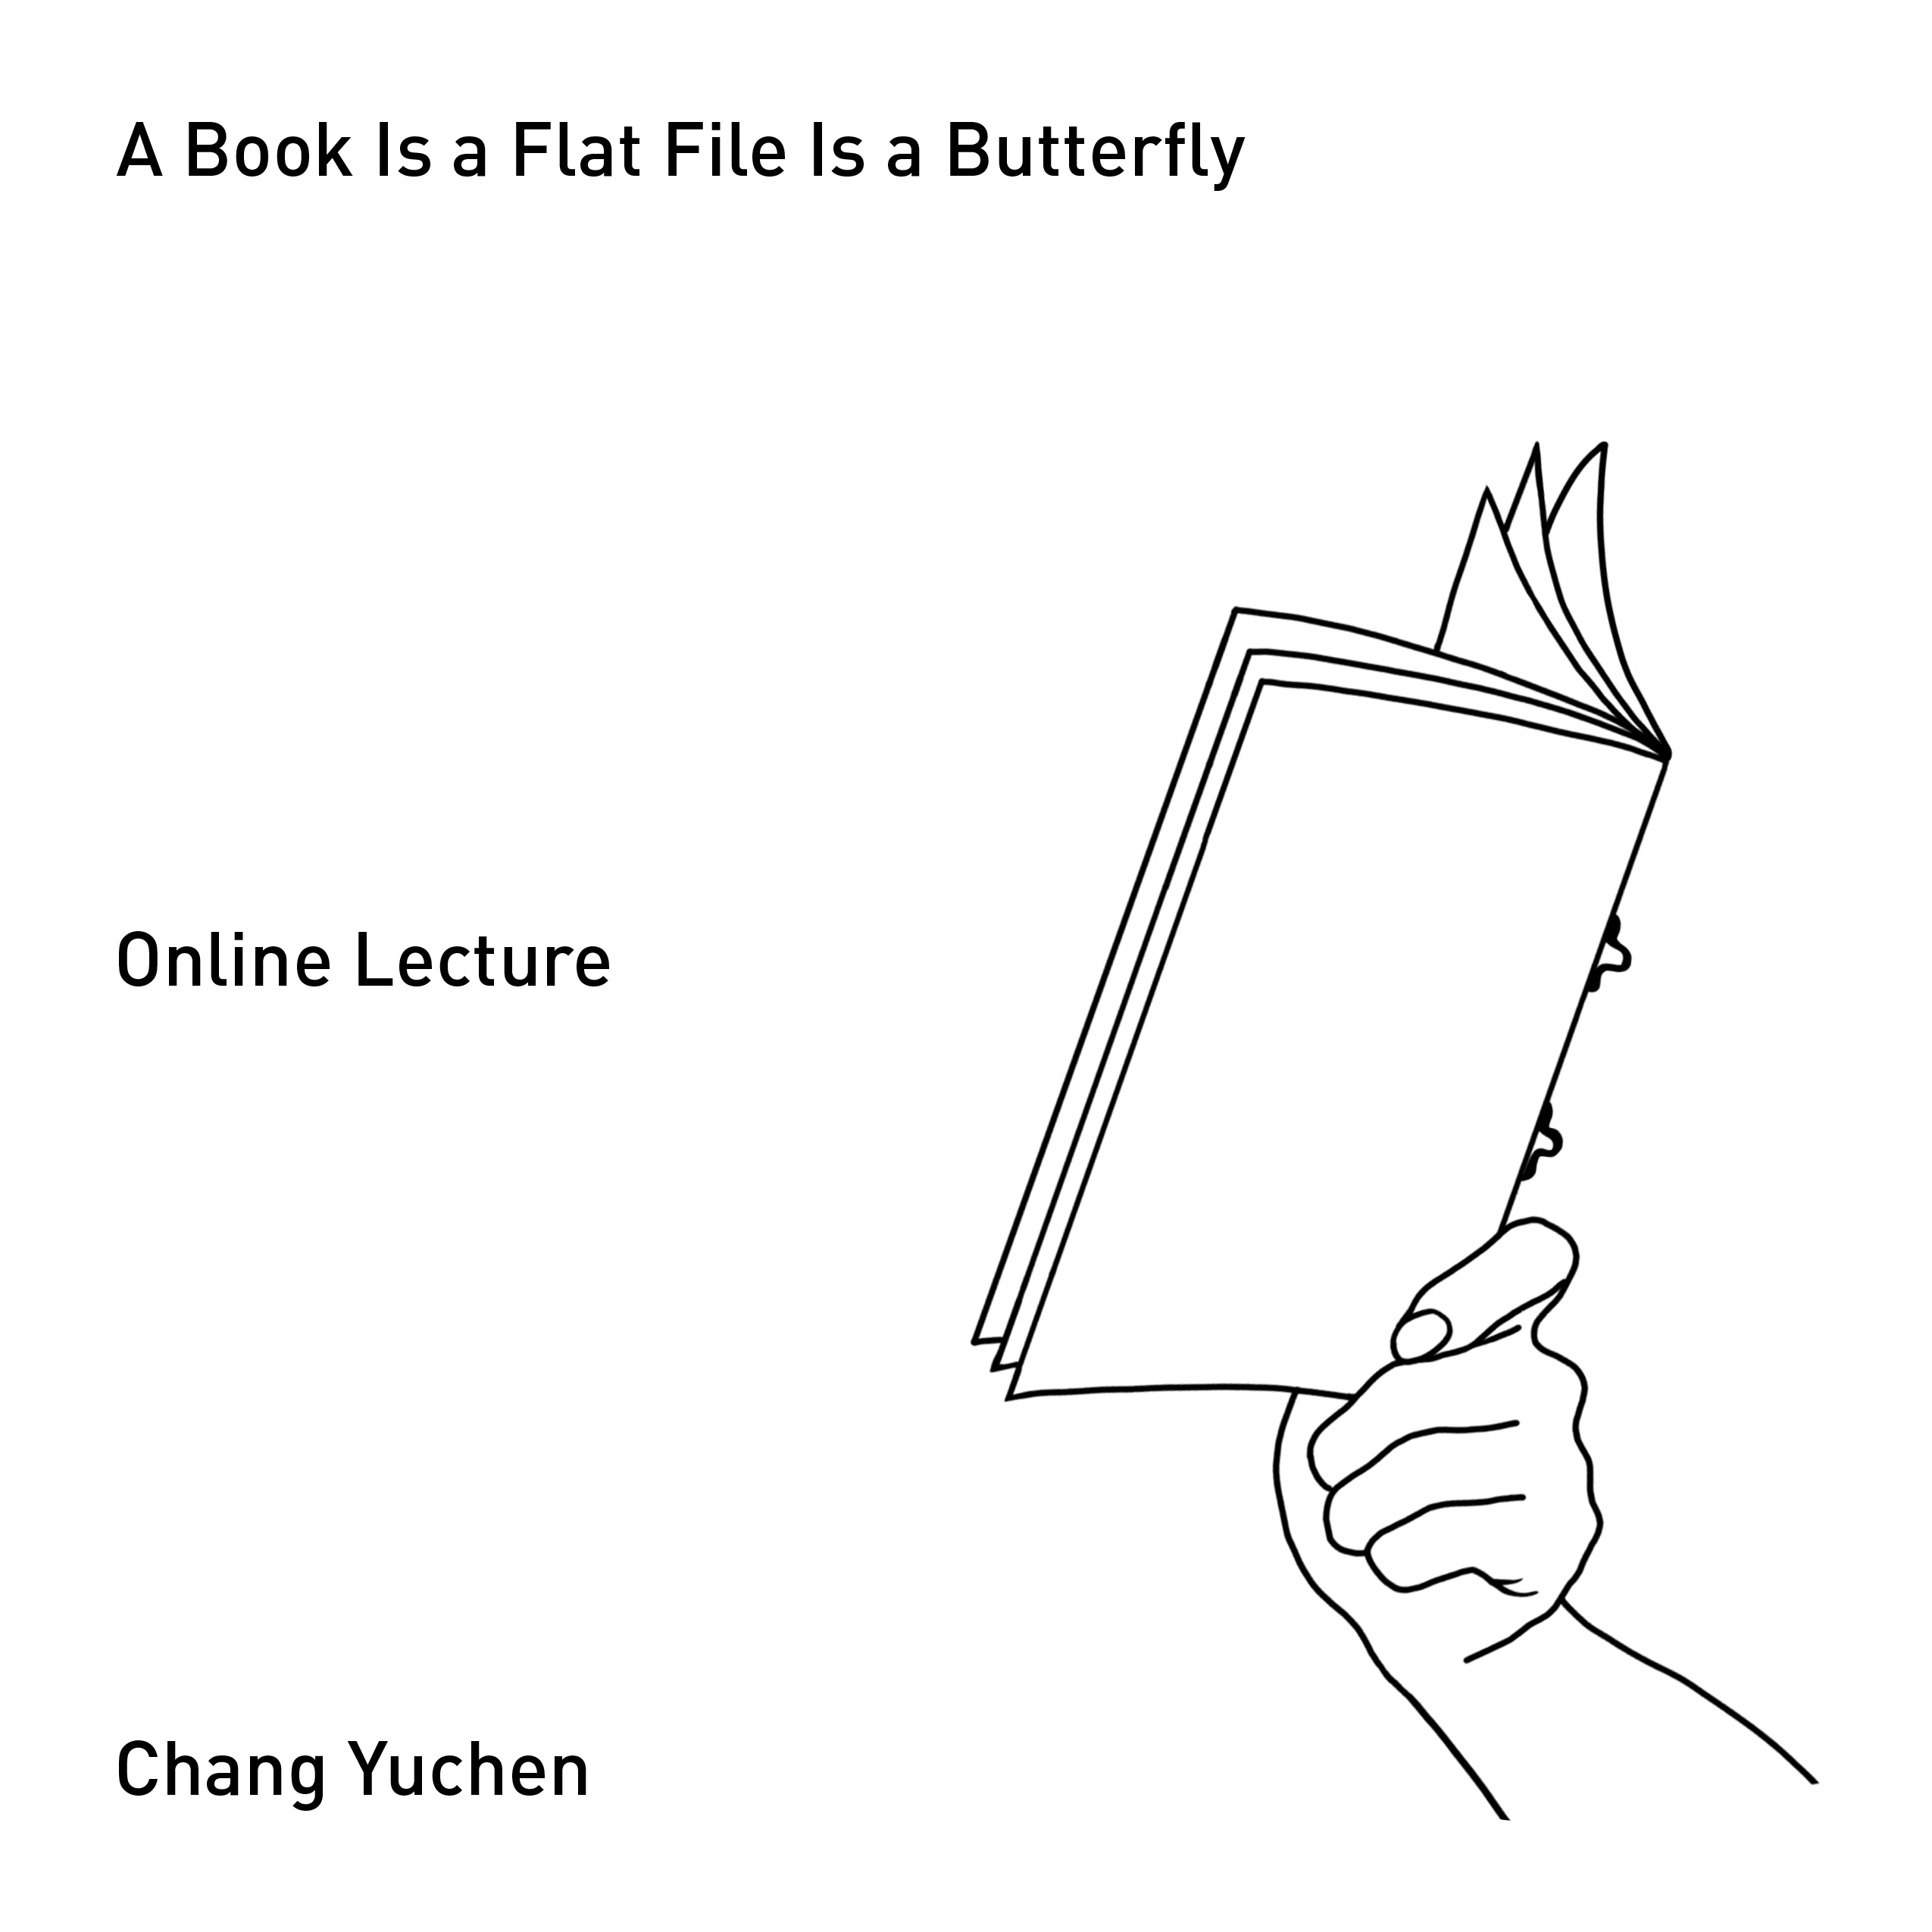 black and white simple line drawing of a hand holding a blank book, with text that reads: A Book Is a Flat File Is a Butterfly / Online Lecture / Chang Yuchen